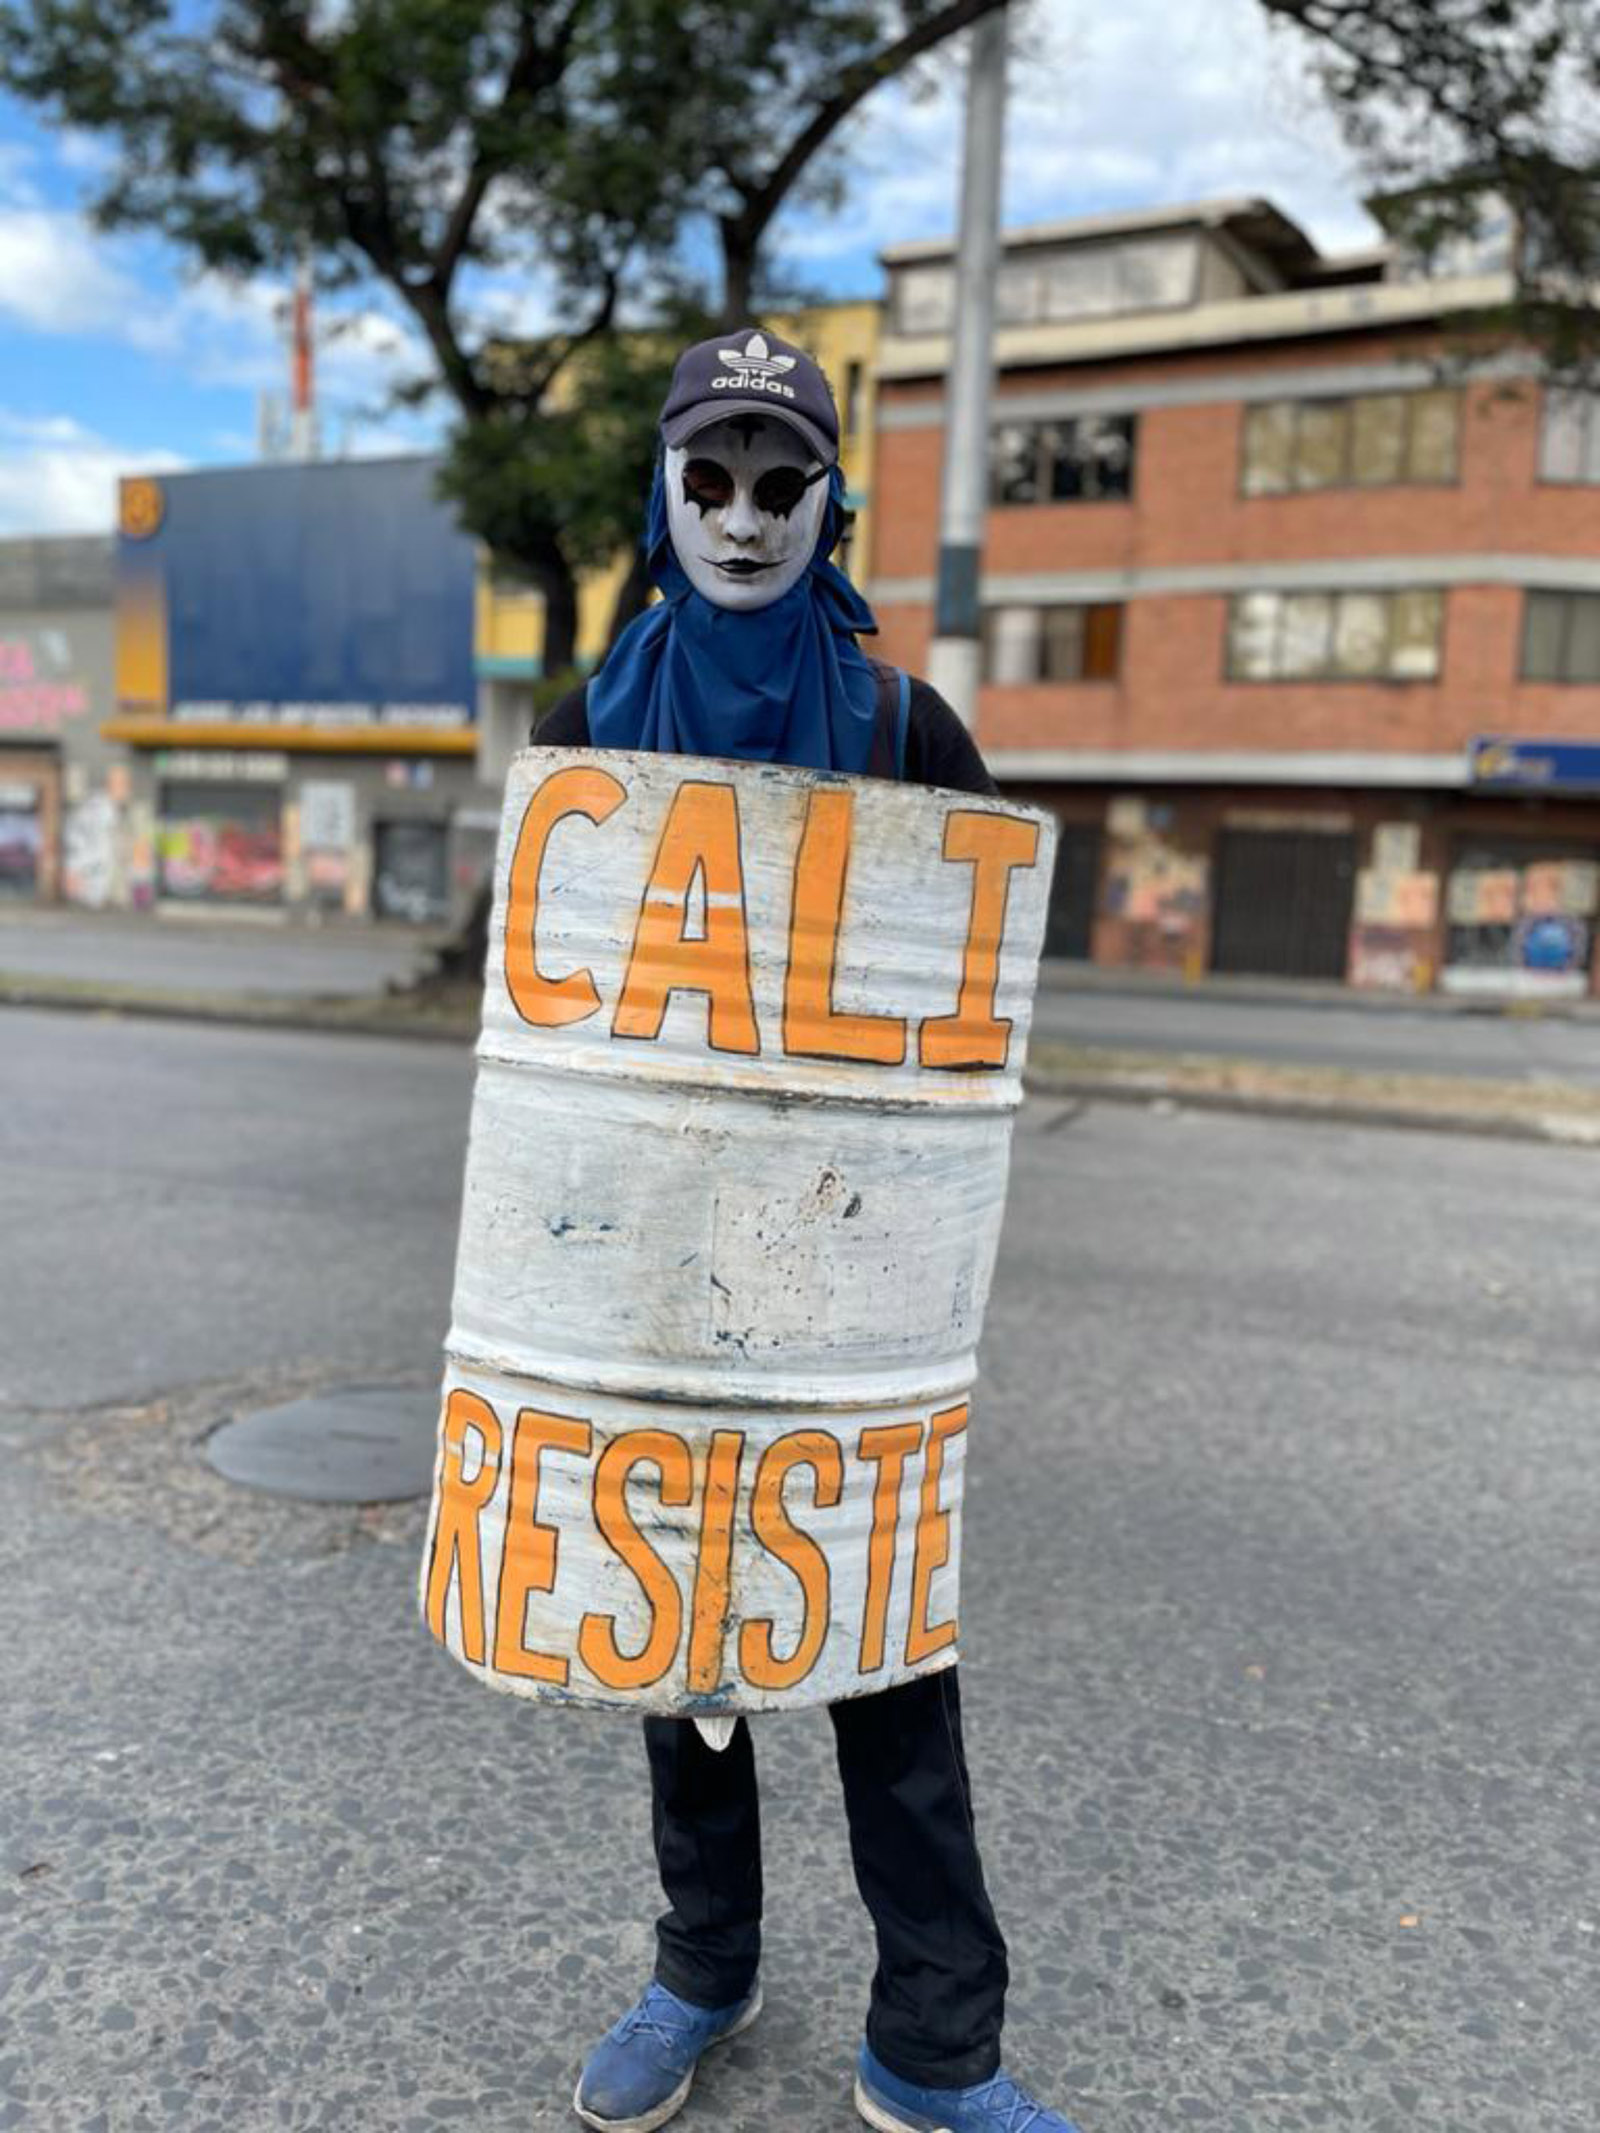 A demonstrator during antigovernment protests, Cali, Colombia, May 2021